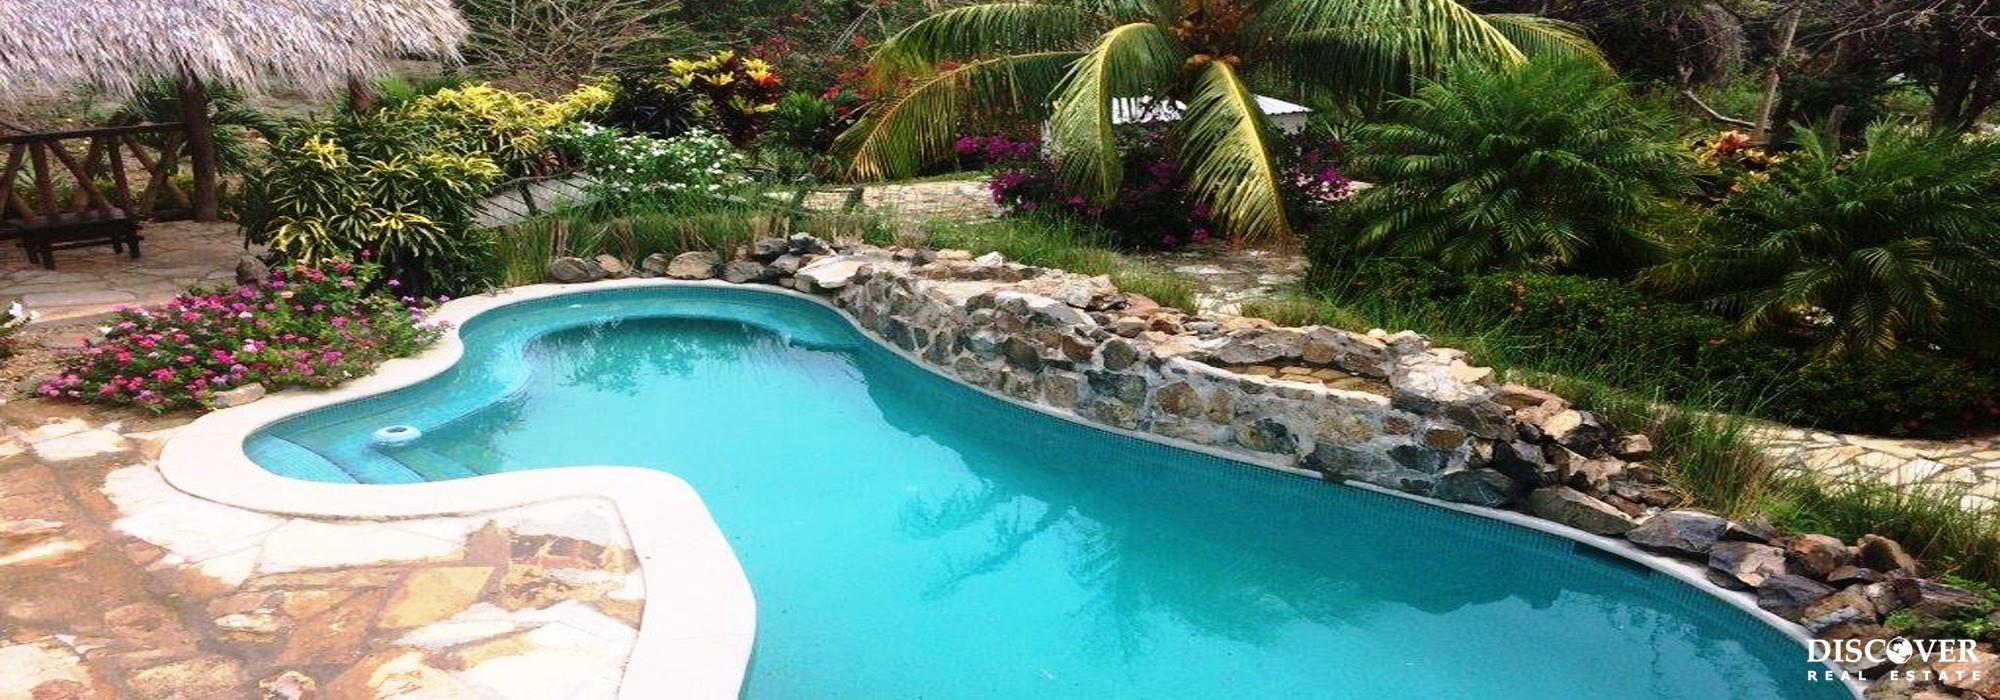 Great Garden Spaces and Custom Pool